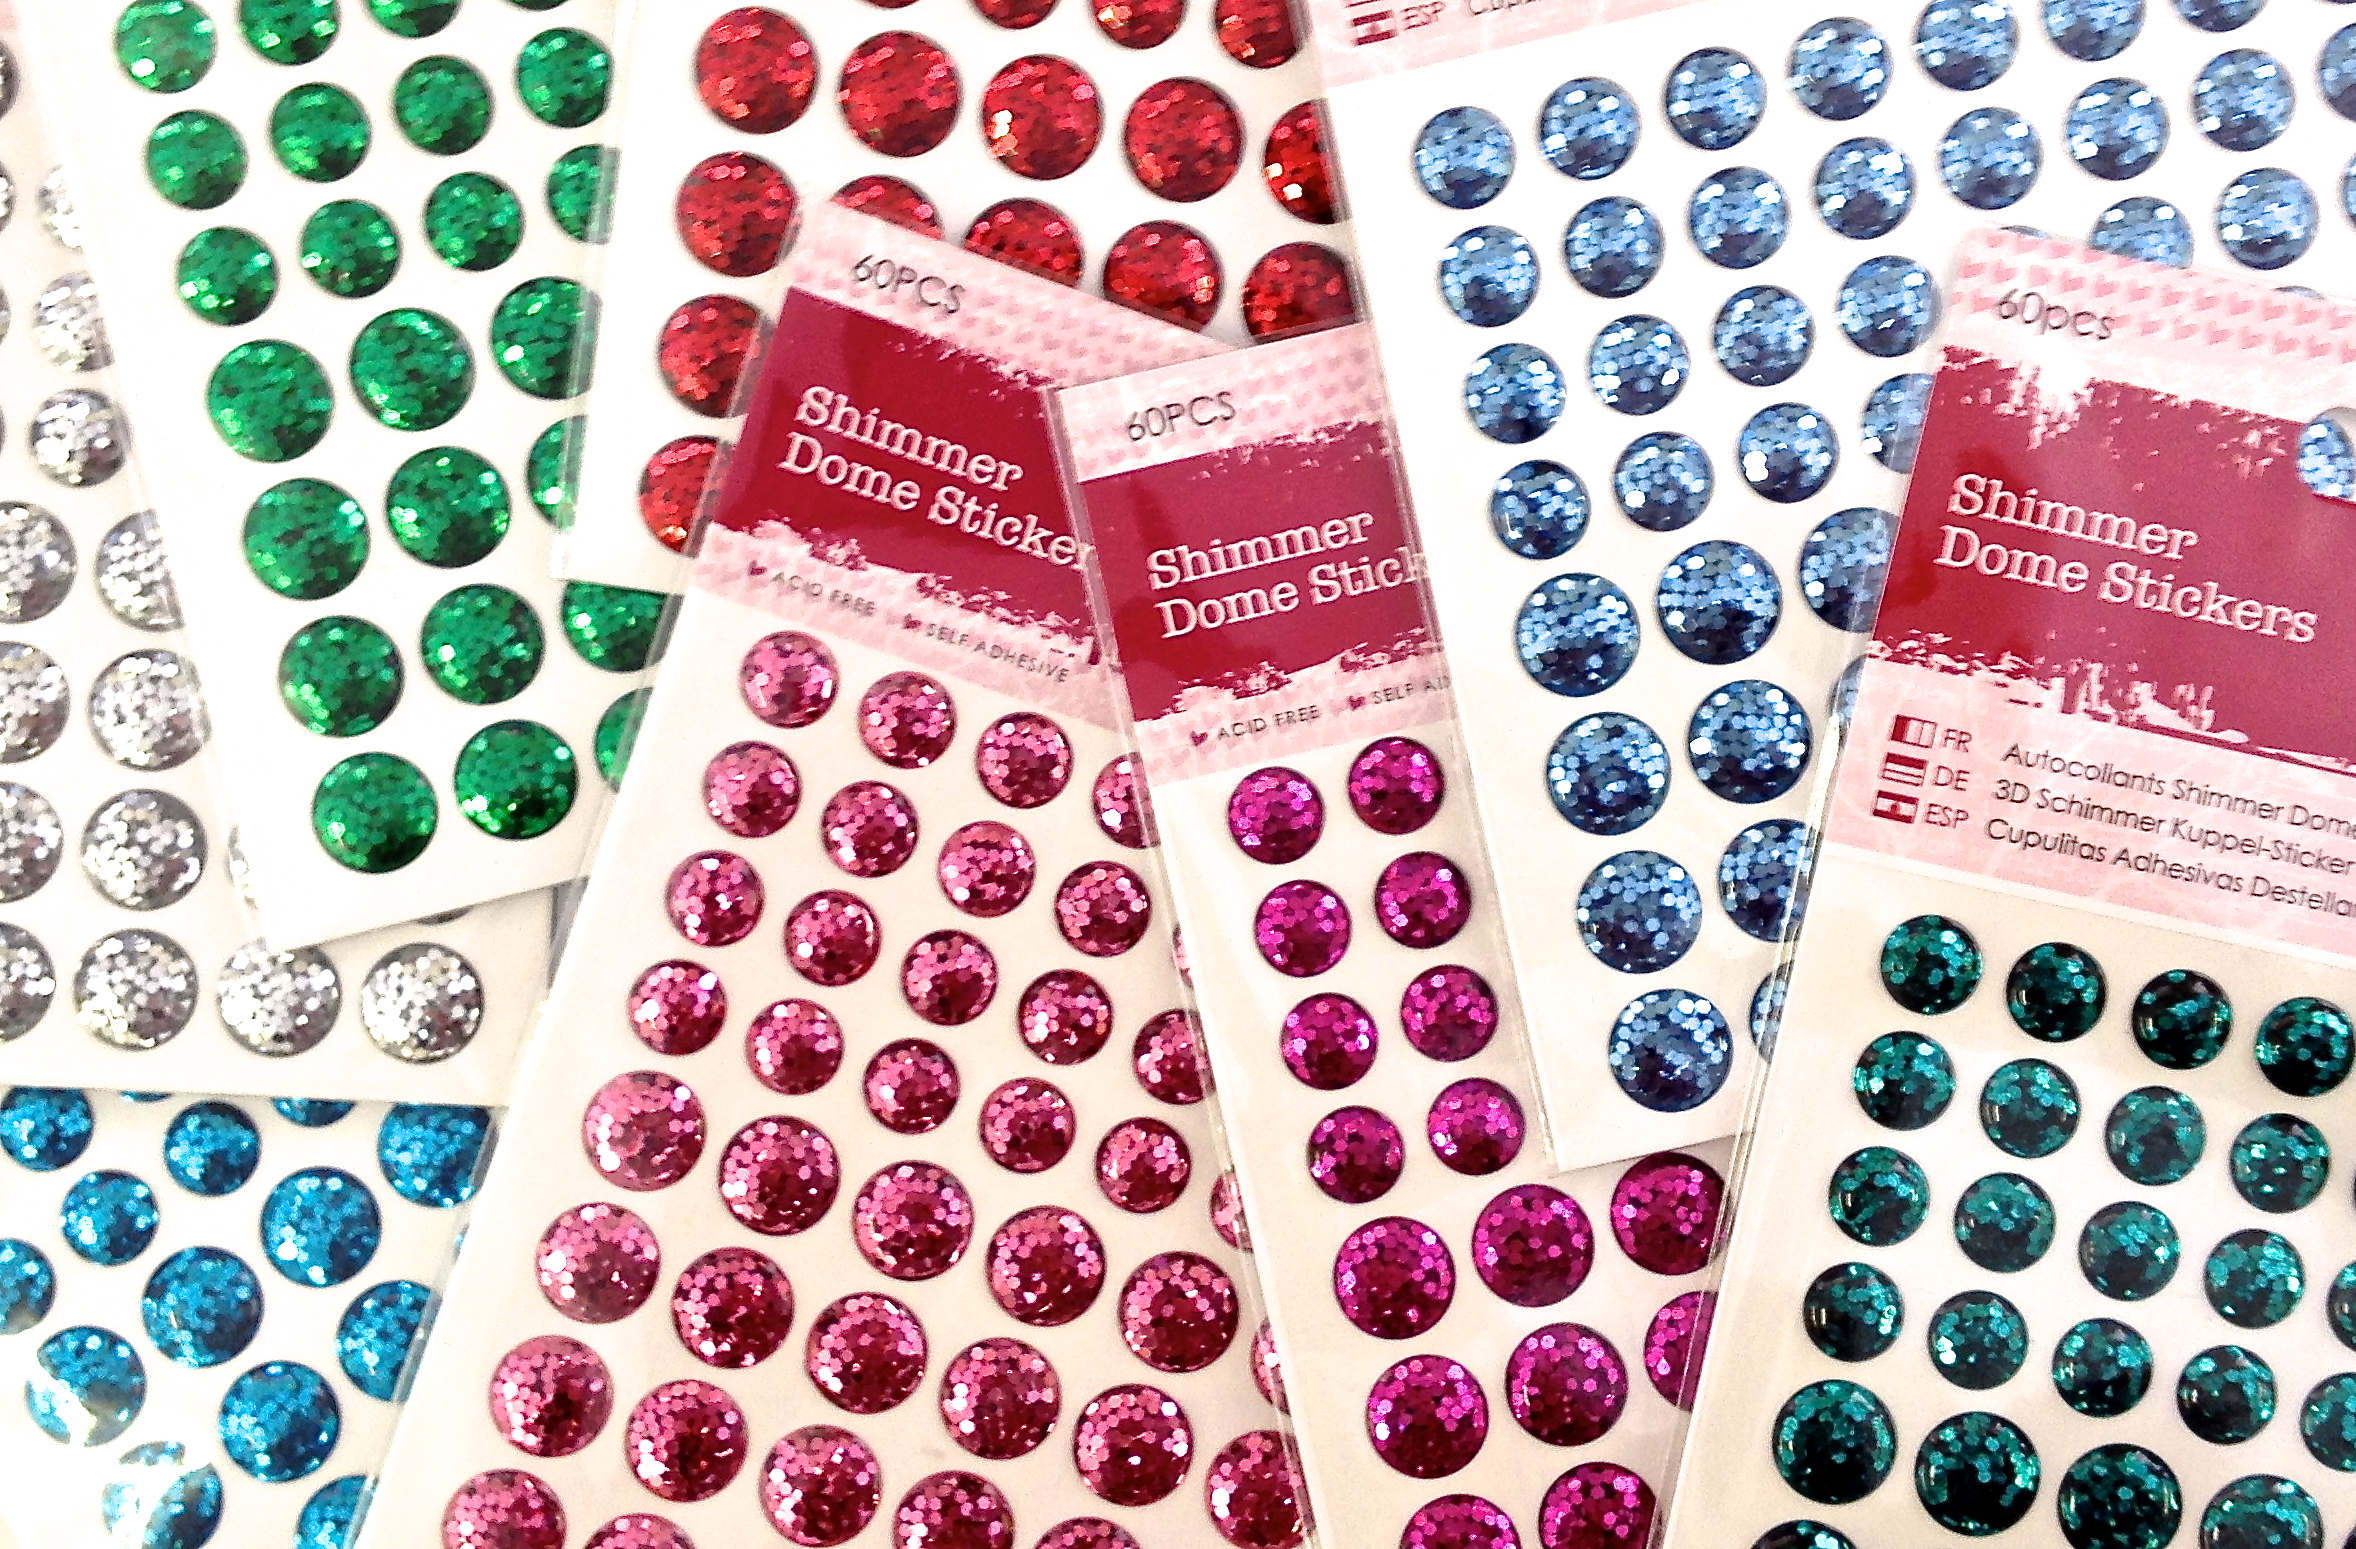 Shimmer Dome Stickers 60pcs Red